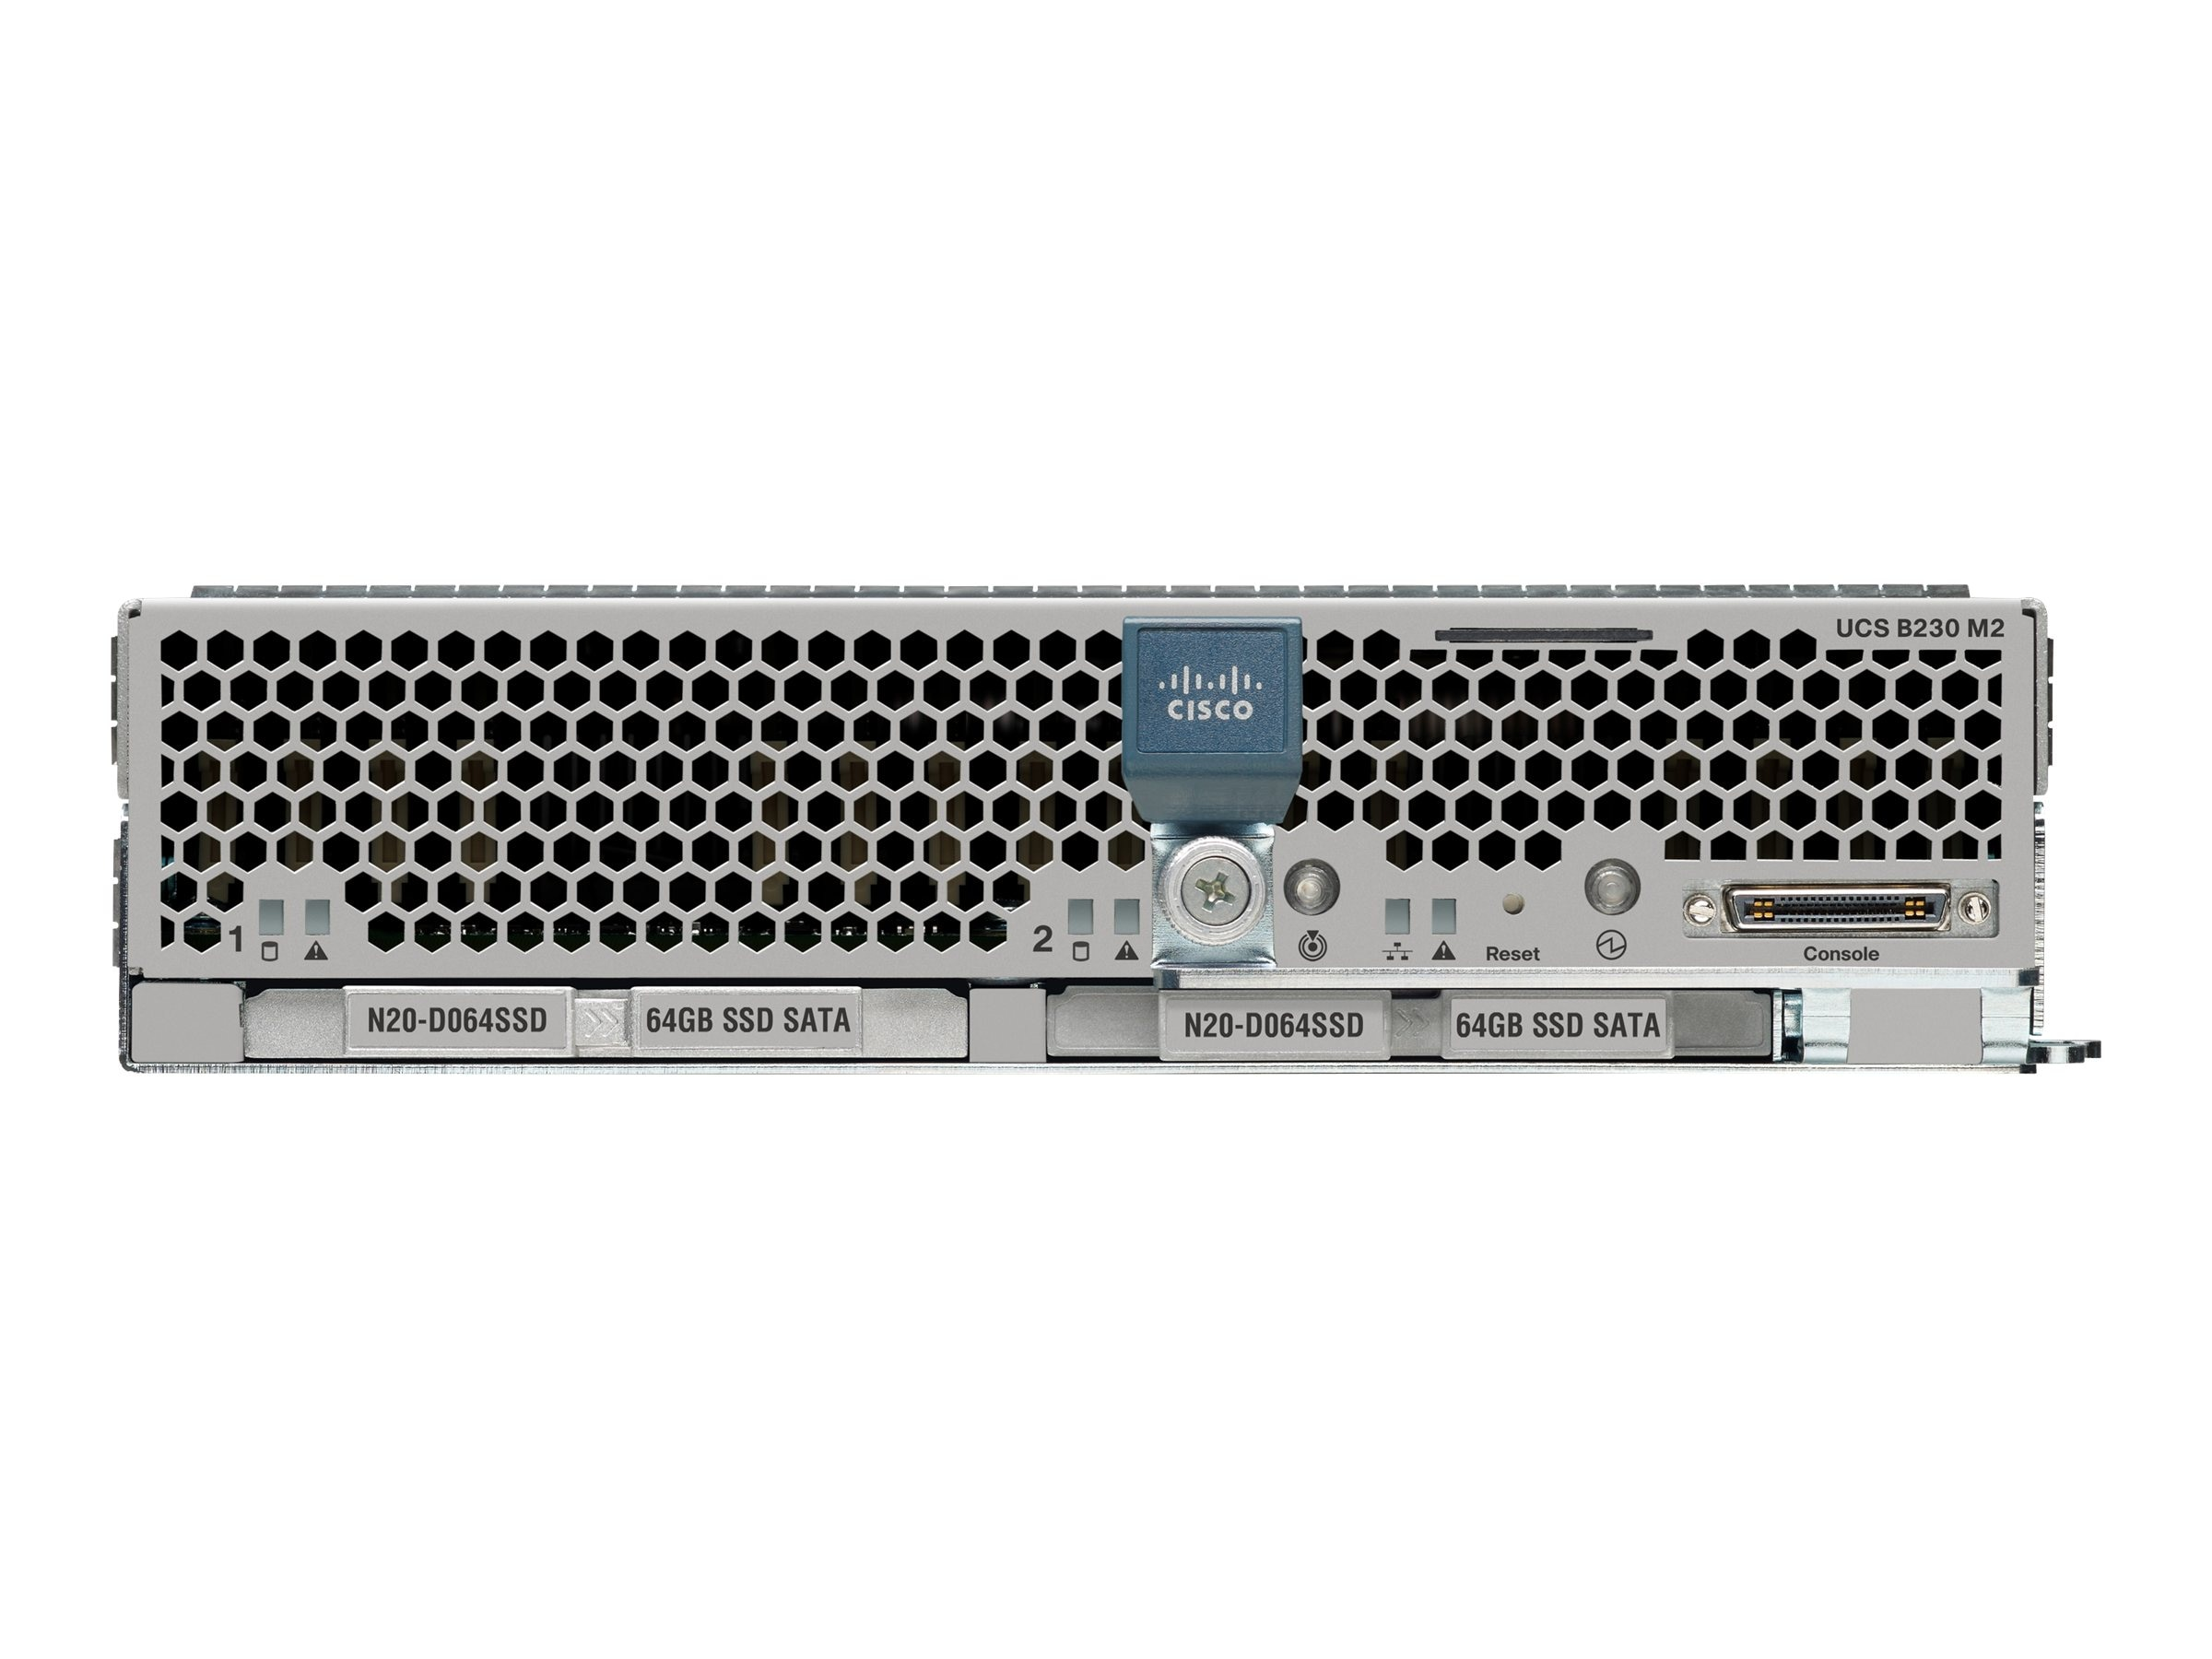 Cisco UCS B230 M2 SmartPlay Expansion Pack Blade (2x) Xeon 10C E7-2860 2.26GHz 128GB VIC1280